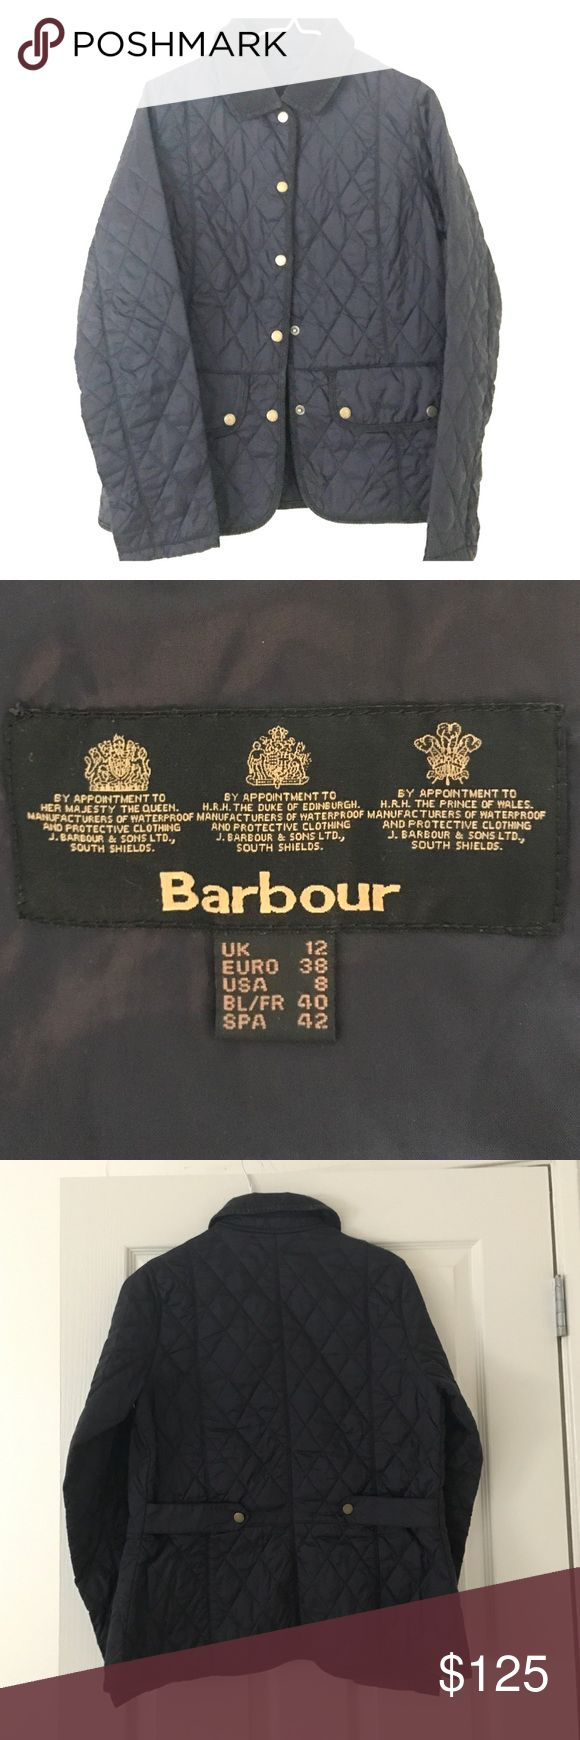 Barbour Quilted Jacket, Navy USA 8/UK 12, like new Beautiful like new, never used. Barbour quilted navy jacket. Cinched silhouette, button from pockets. Simple, elegant, timeless. From England. Barbour Jackets & Coats